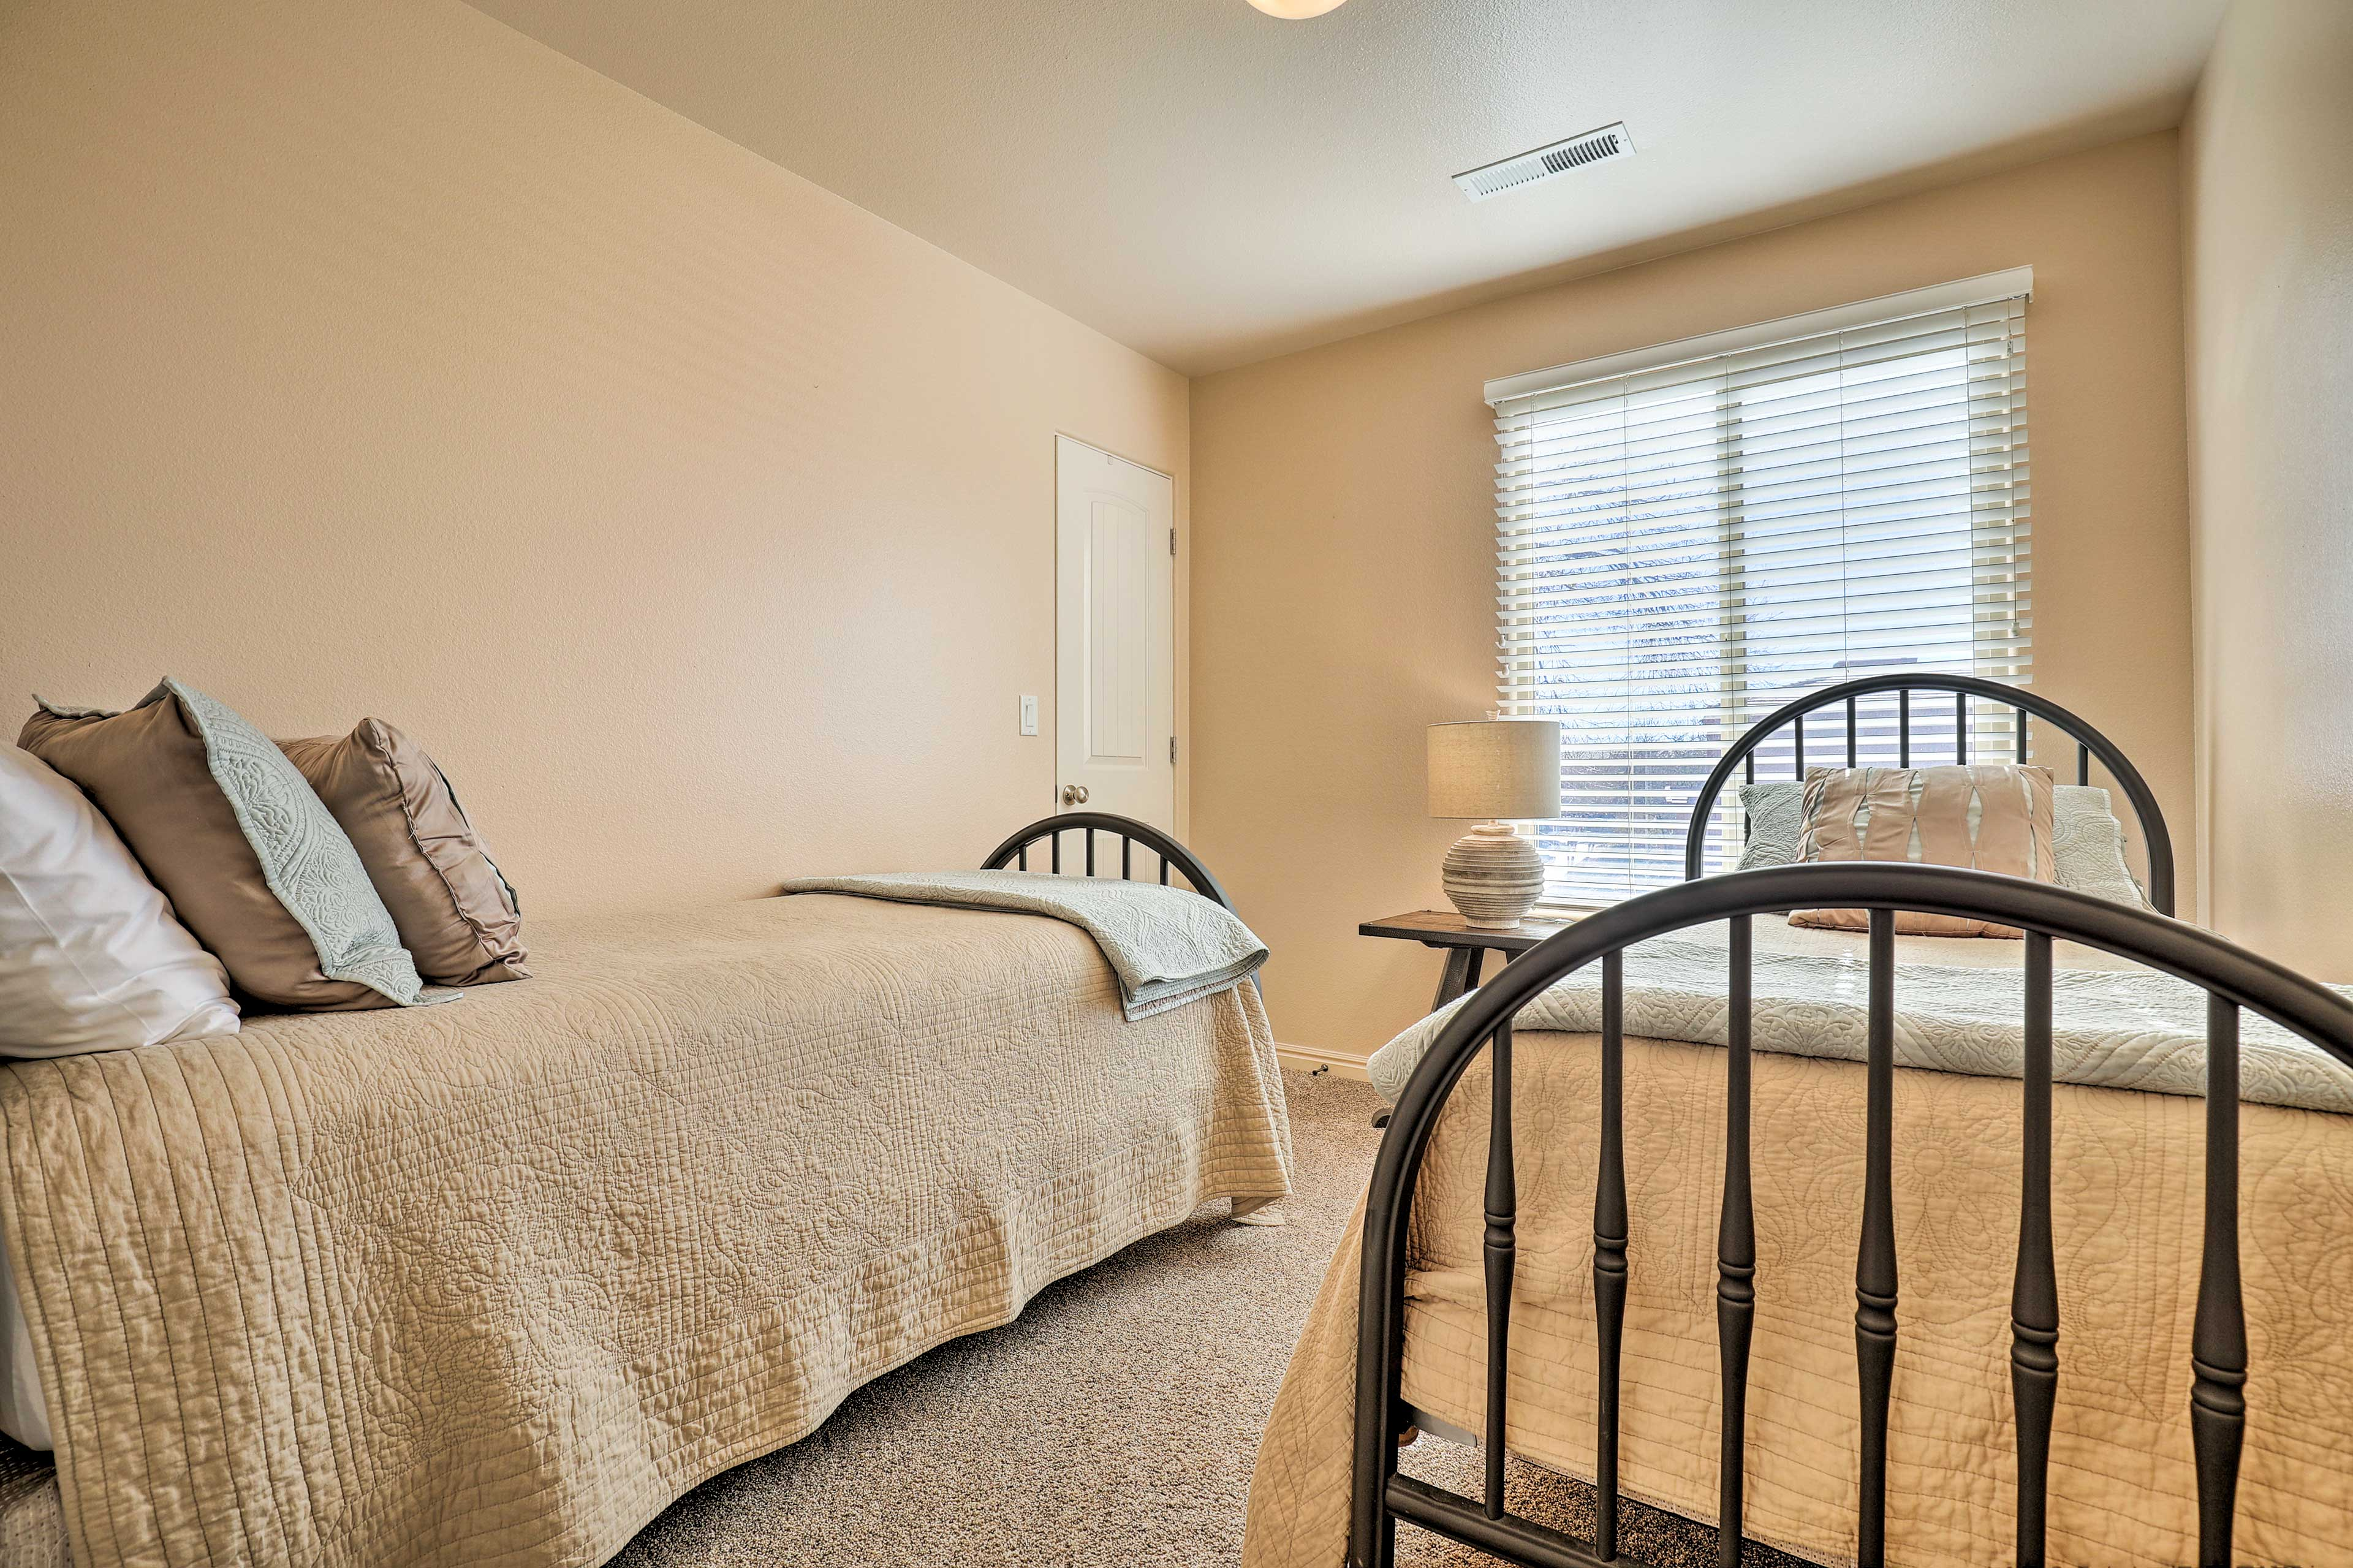 The final bedroom features 2 twins.